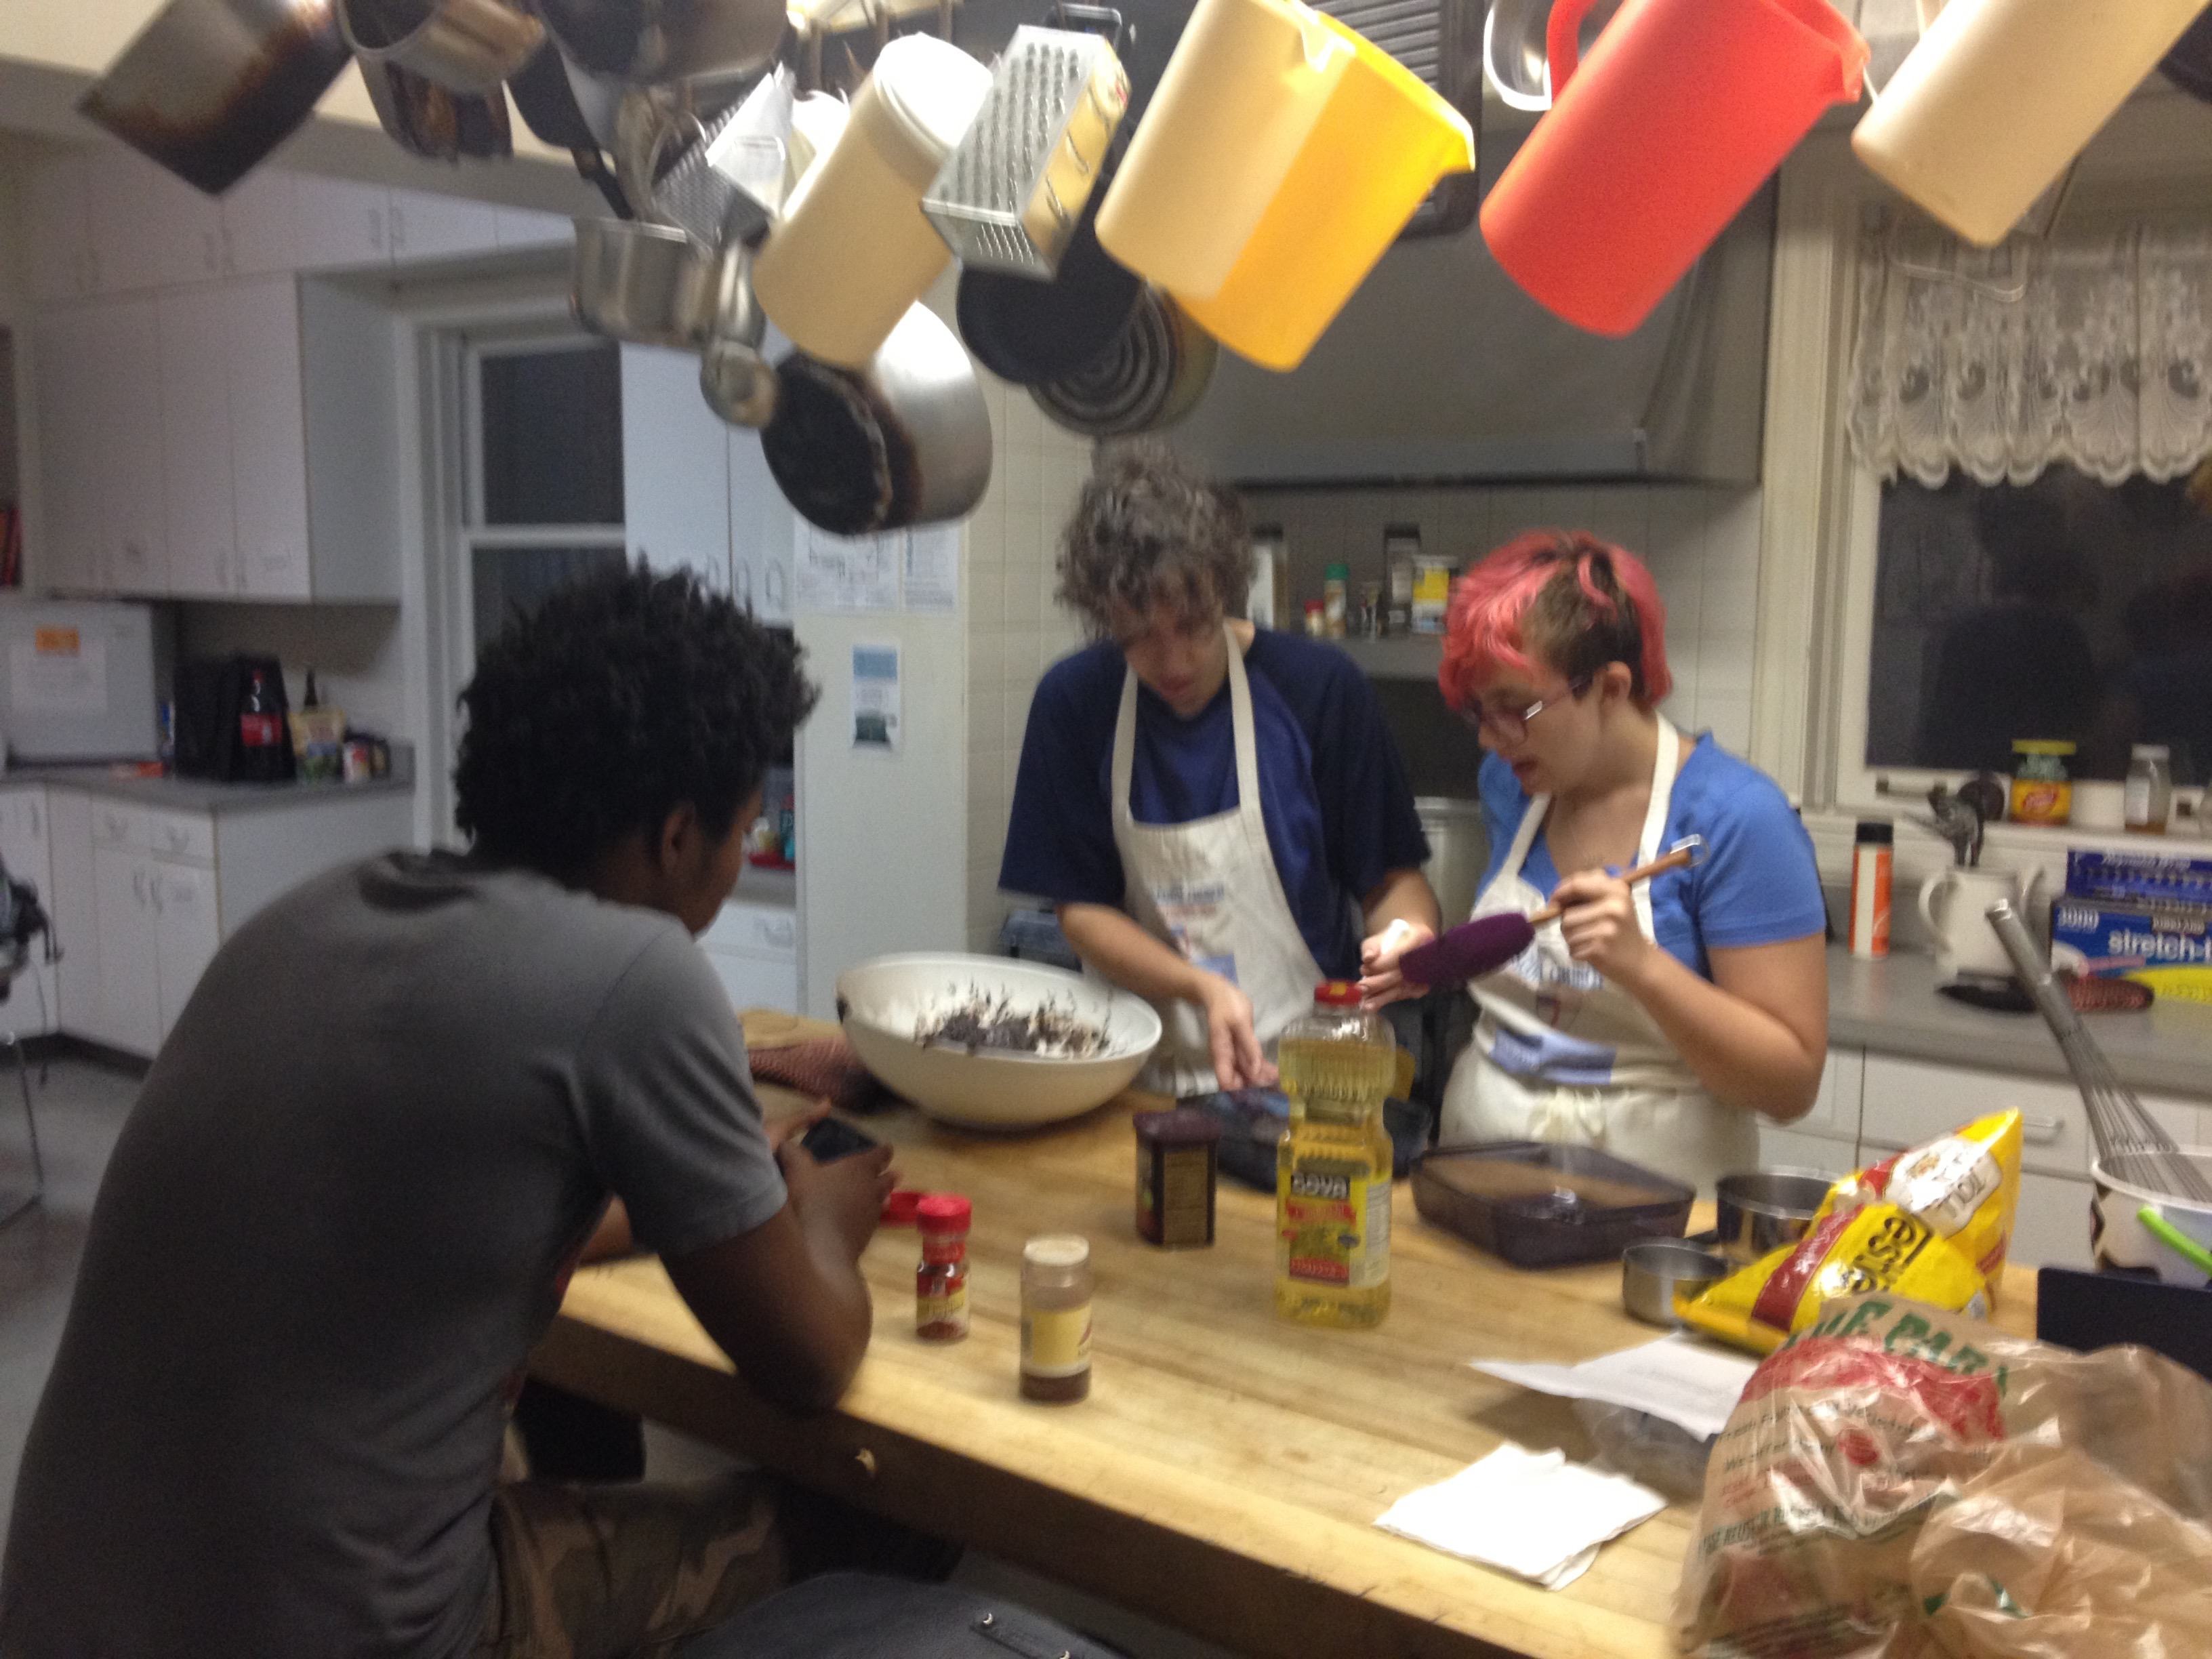 The students cooking together, gathered around the island in Brent House's kitchen.